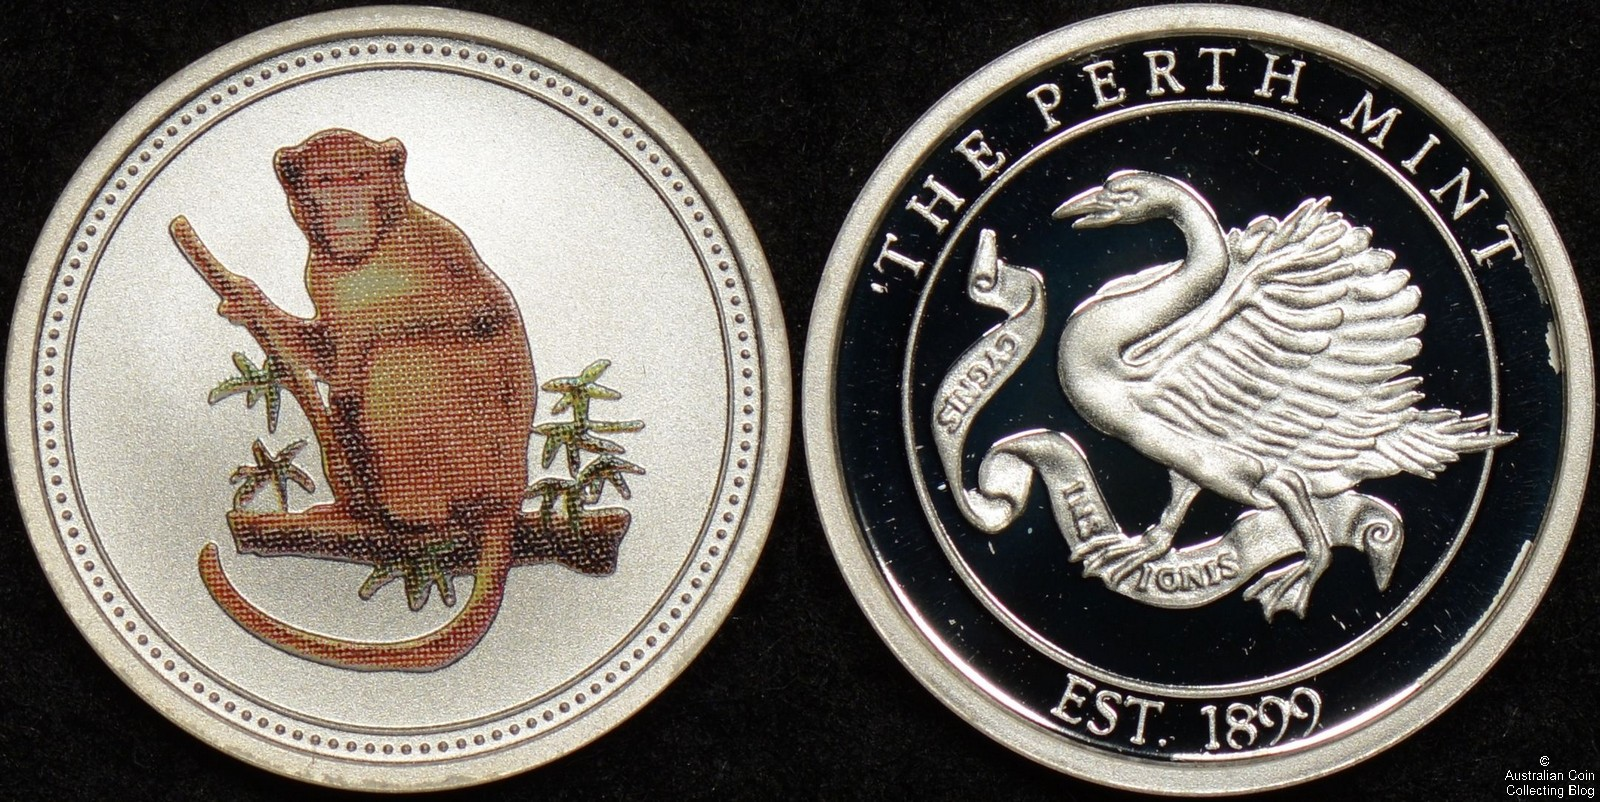 Circa 2004 Perth Mint Silver Monkey Medallion